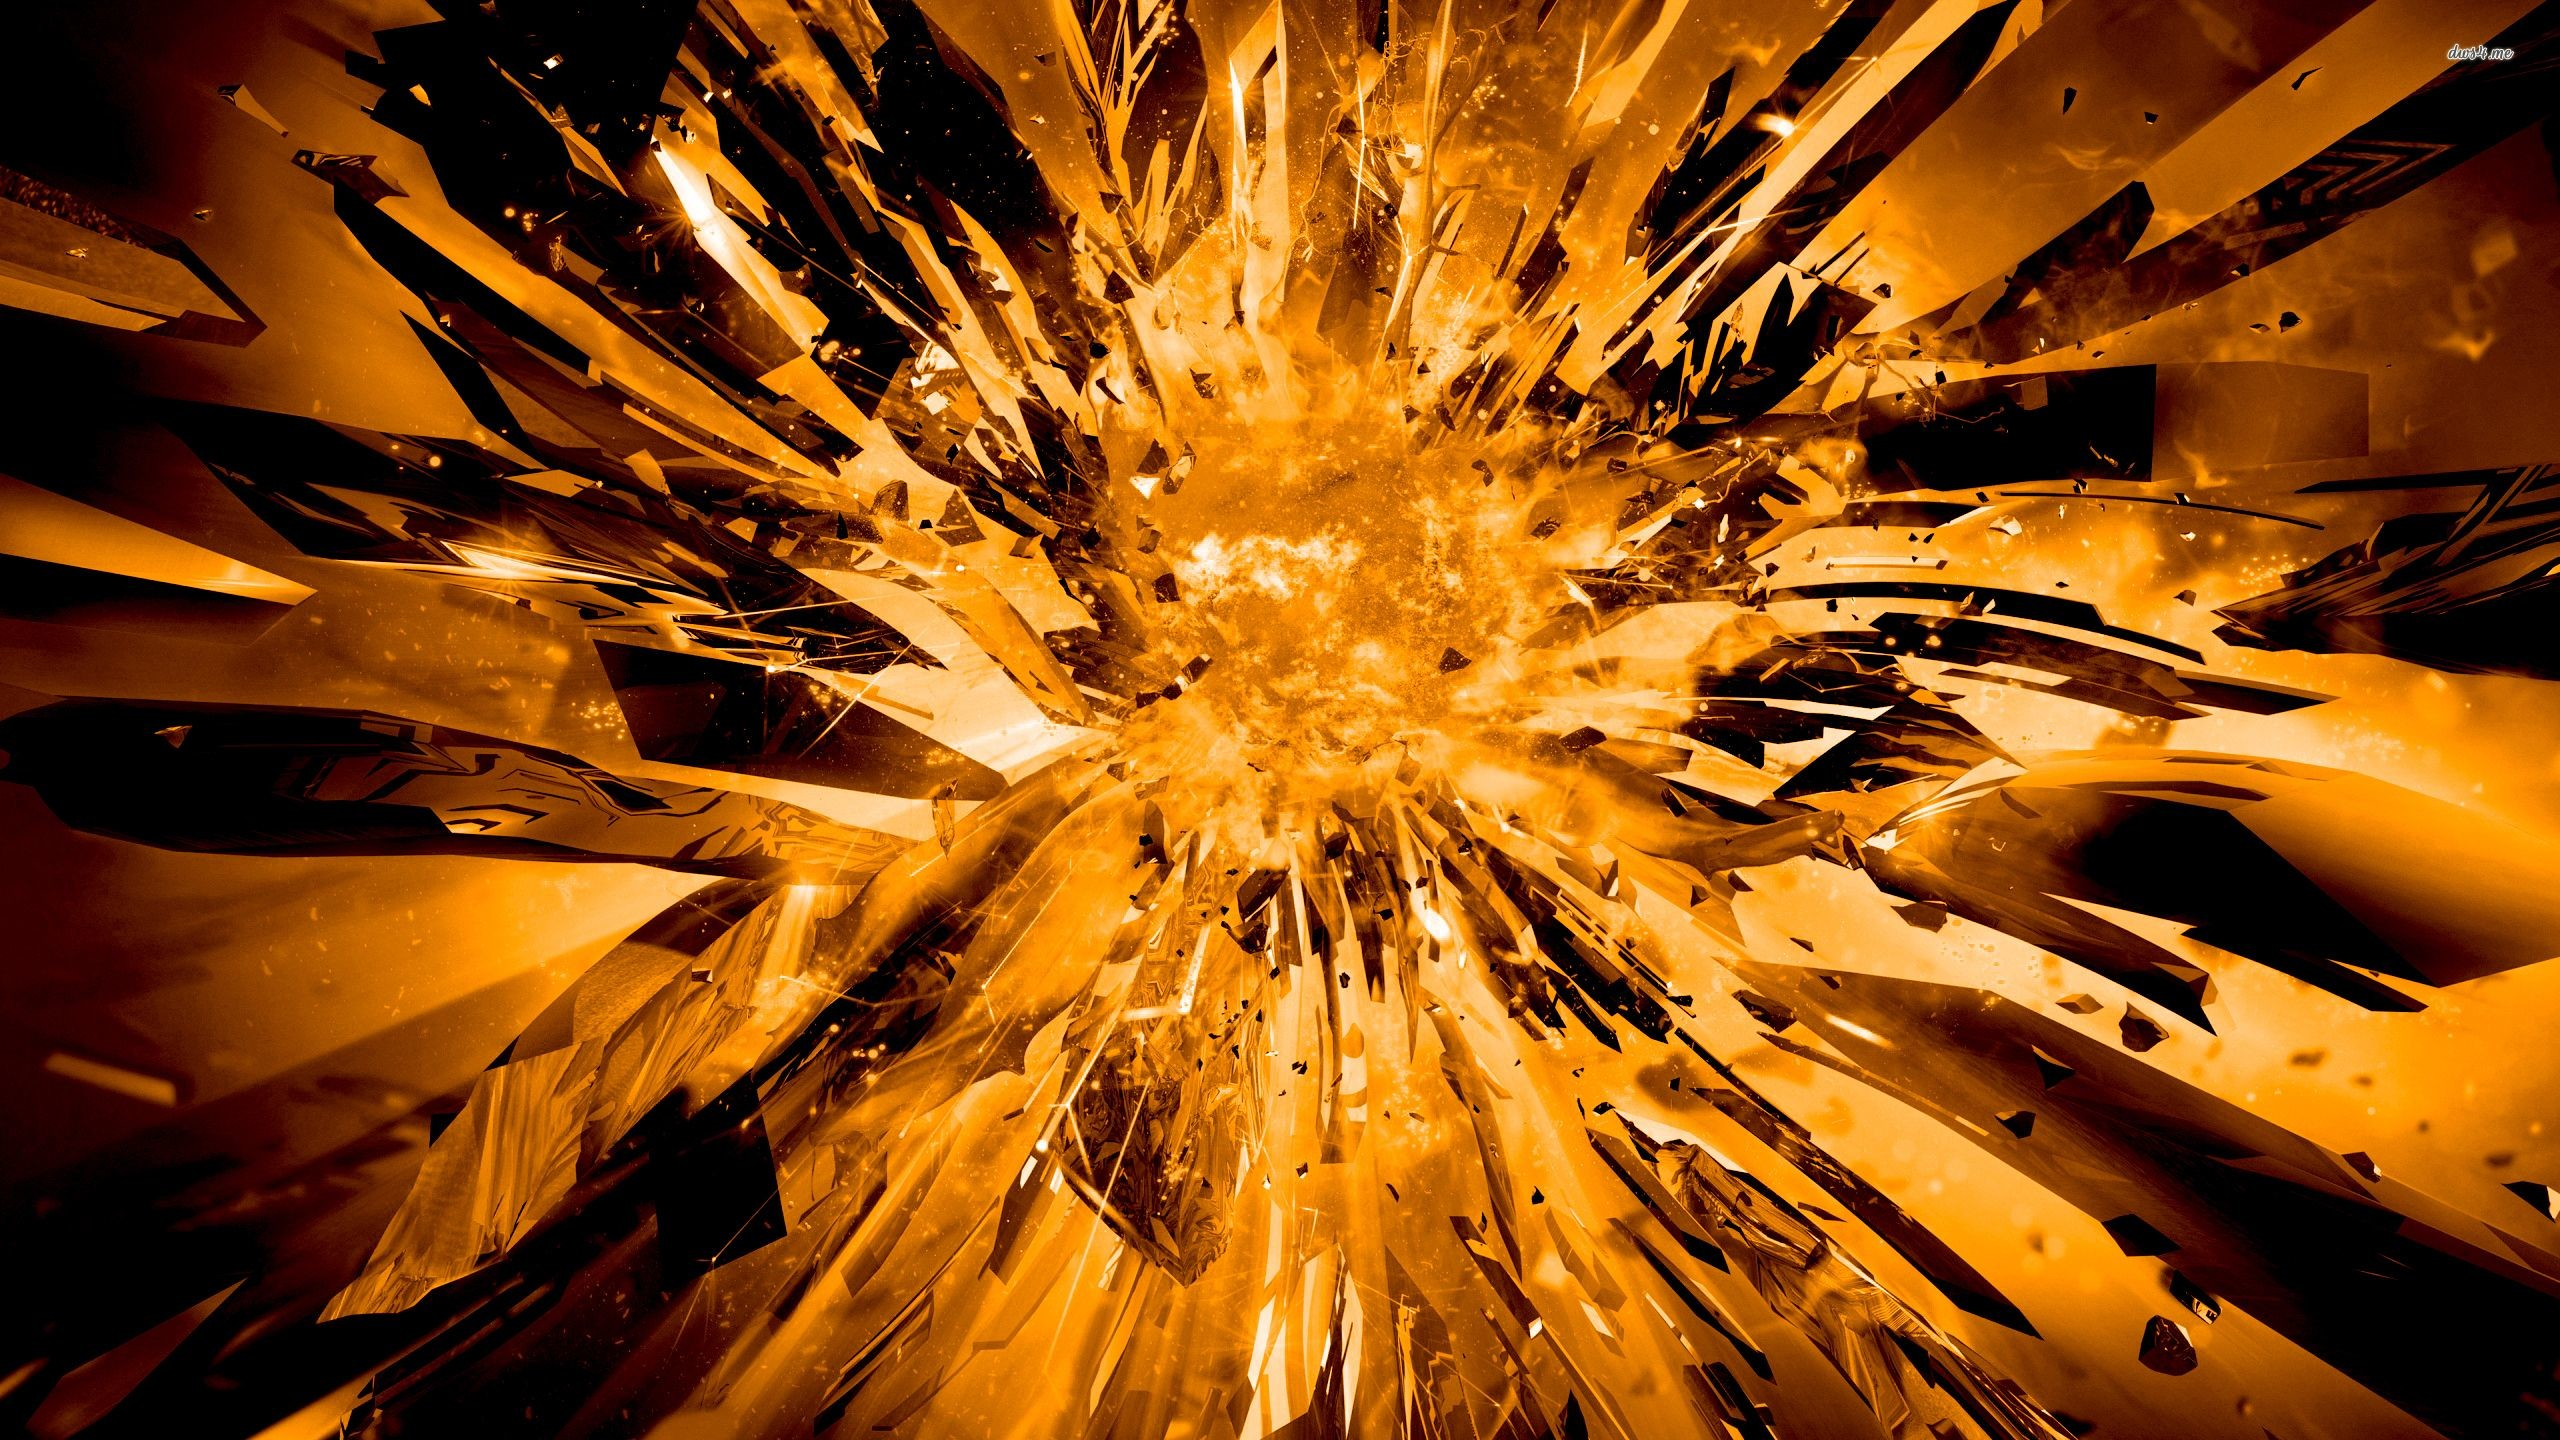 Res: 2560x1440, Explosion Wallpapers, XTD75 Full HD Wallpapers For Desktop And Mobile